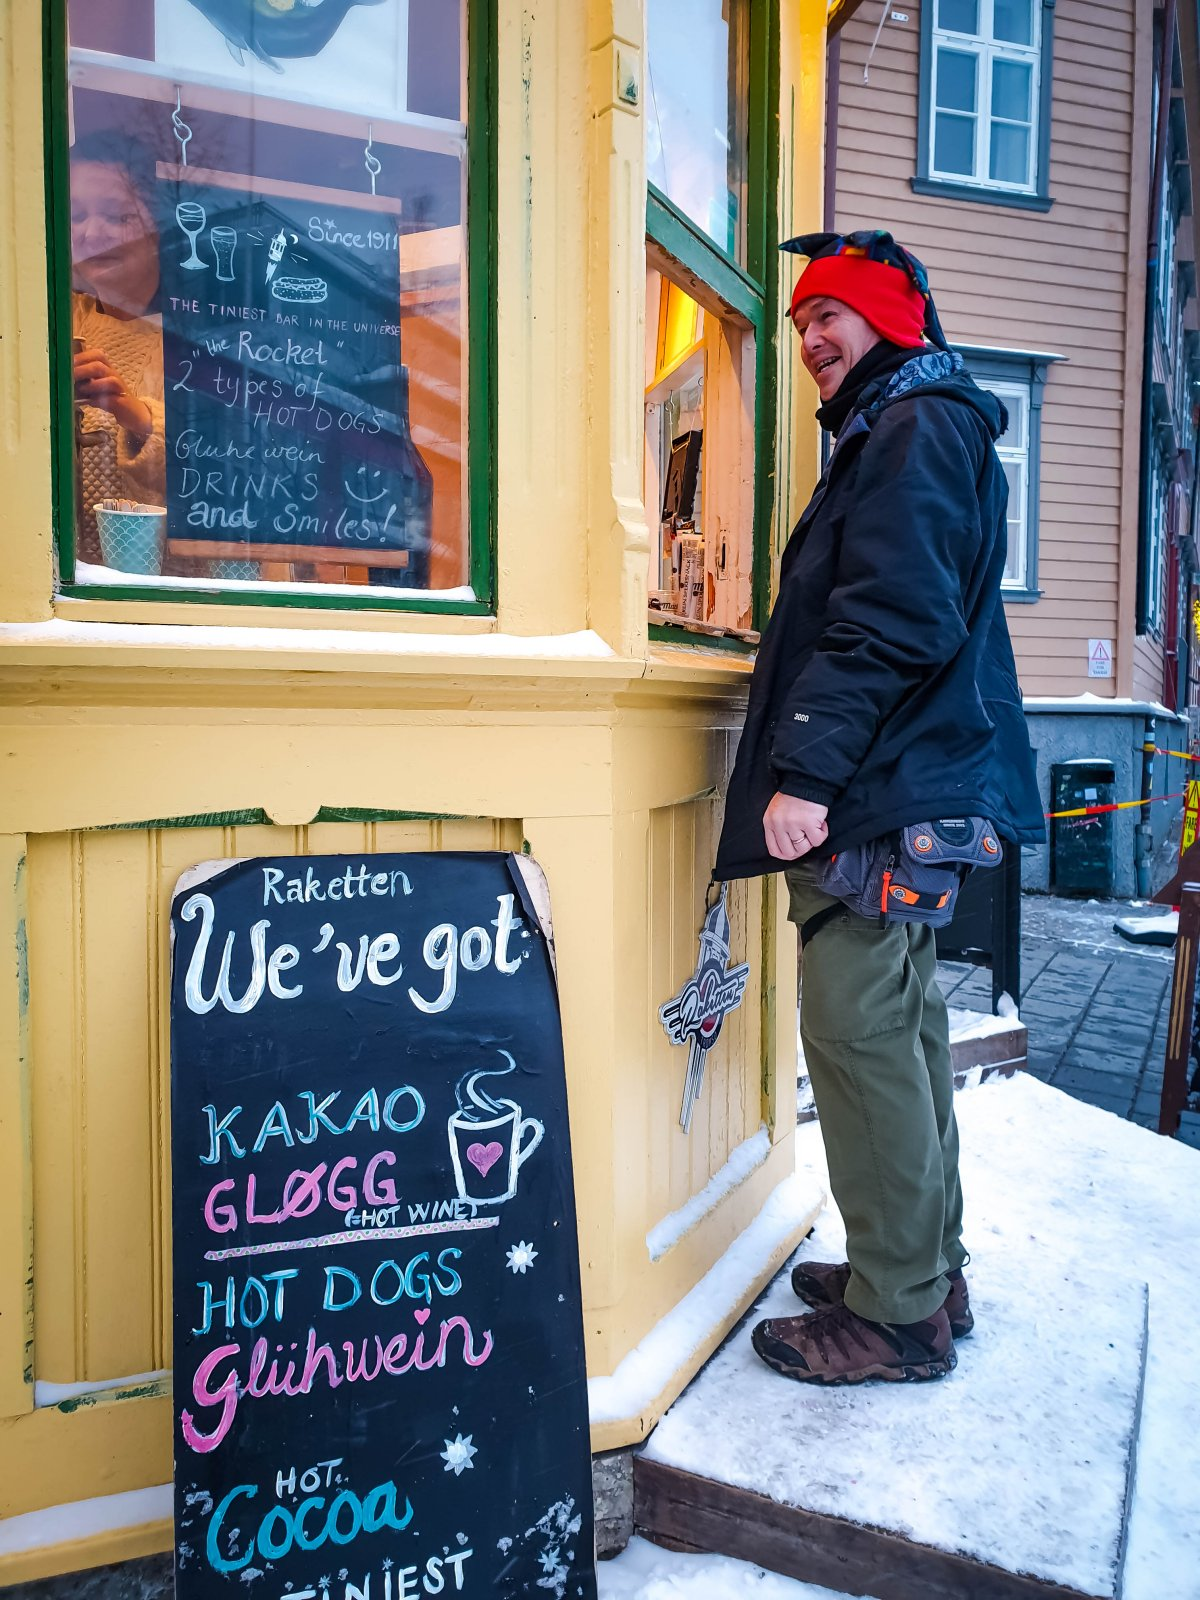 The eccentricenglishman - Rocket Kiosk Tromso